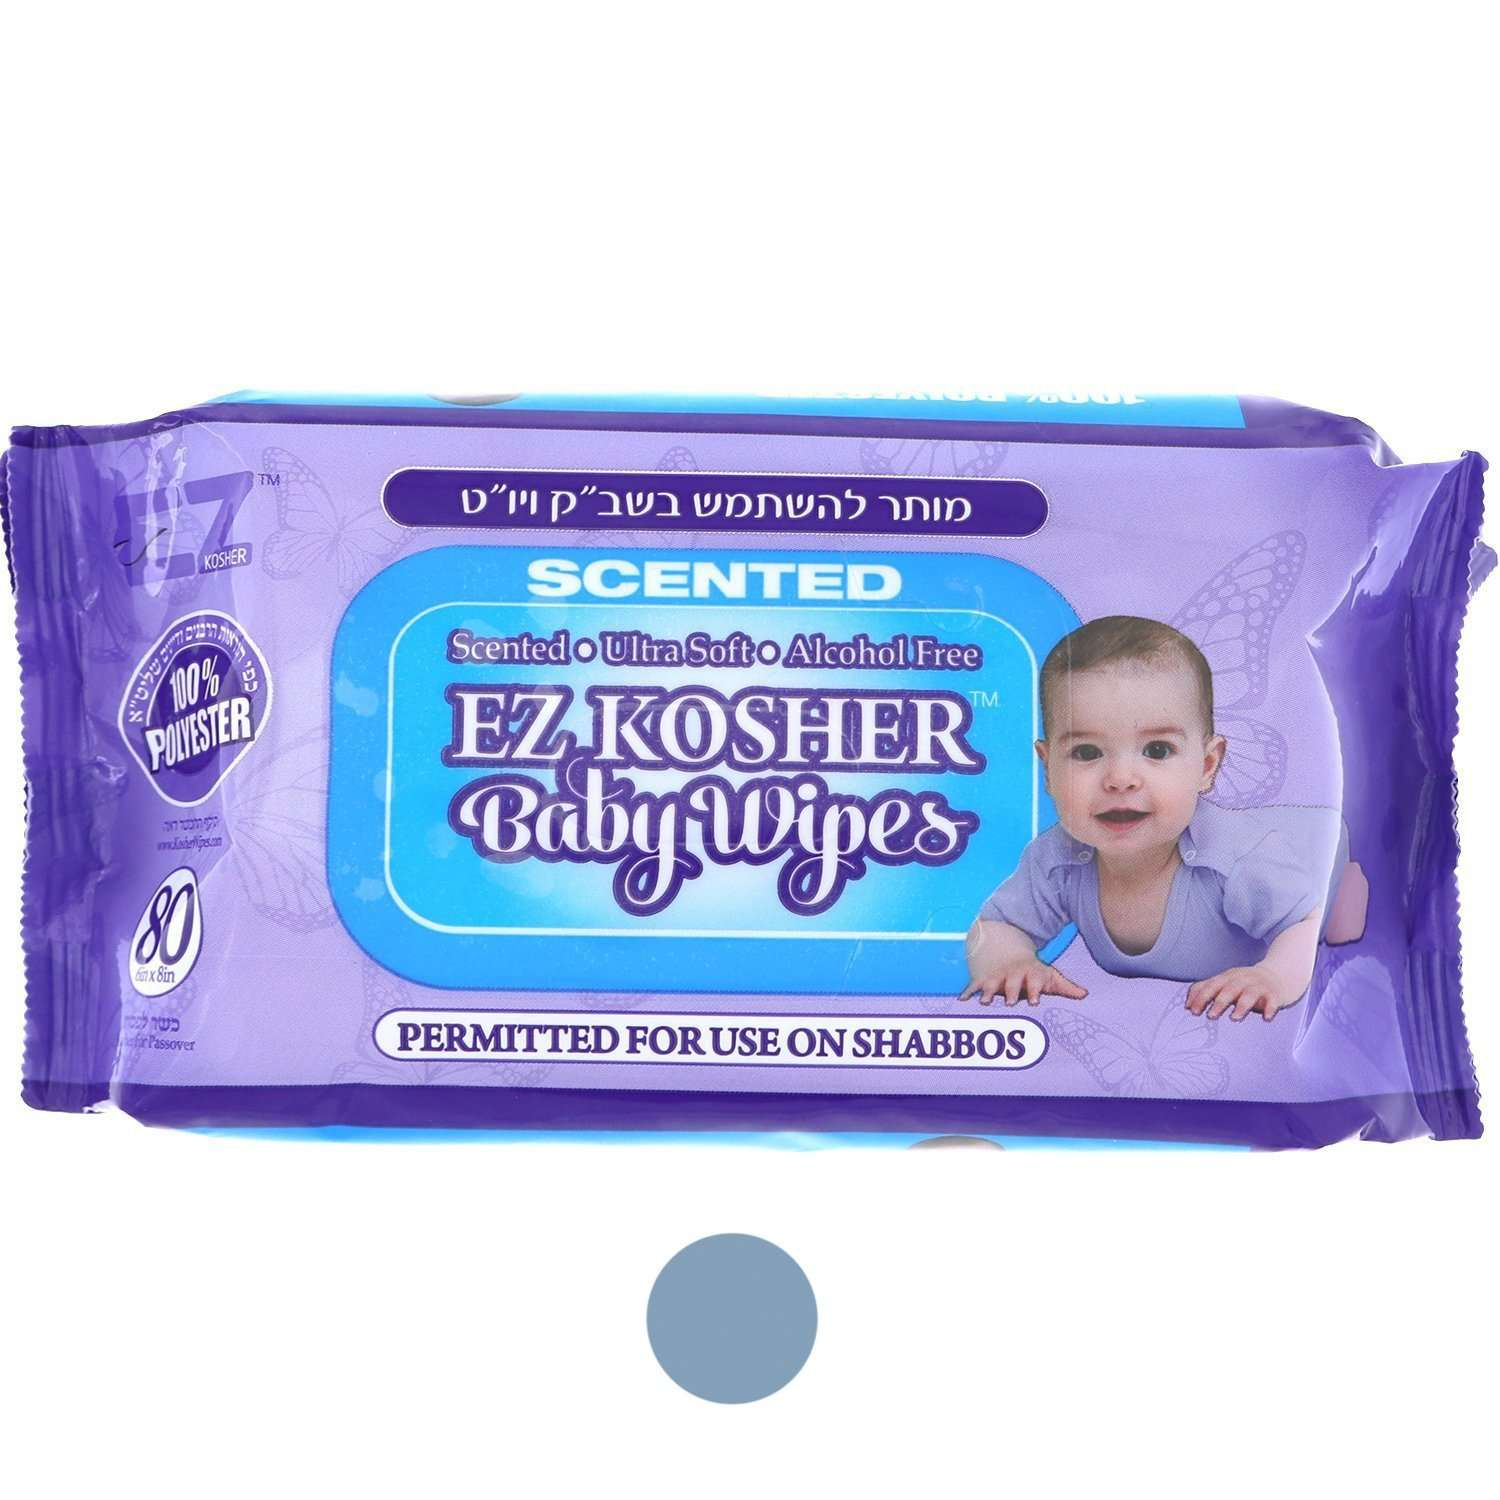 Scented Baby Wipes